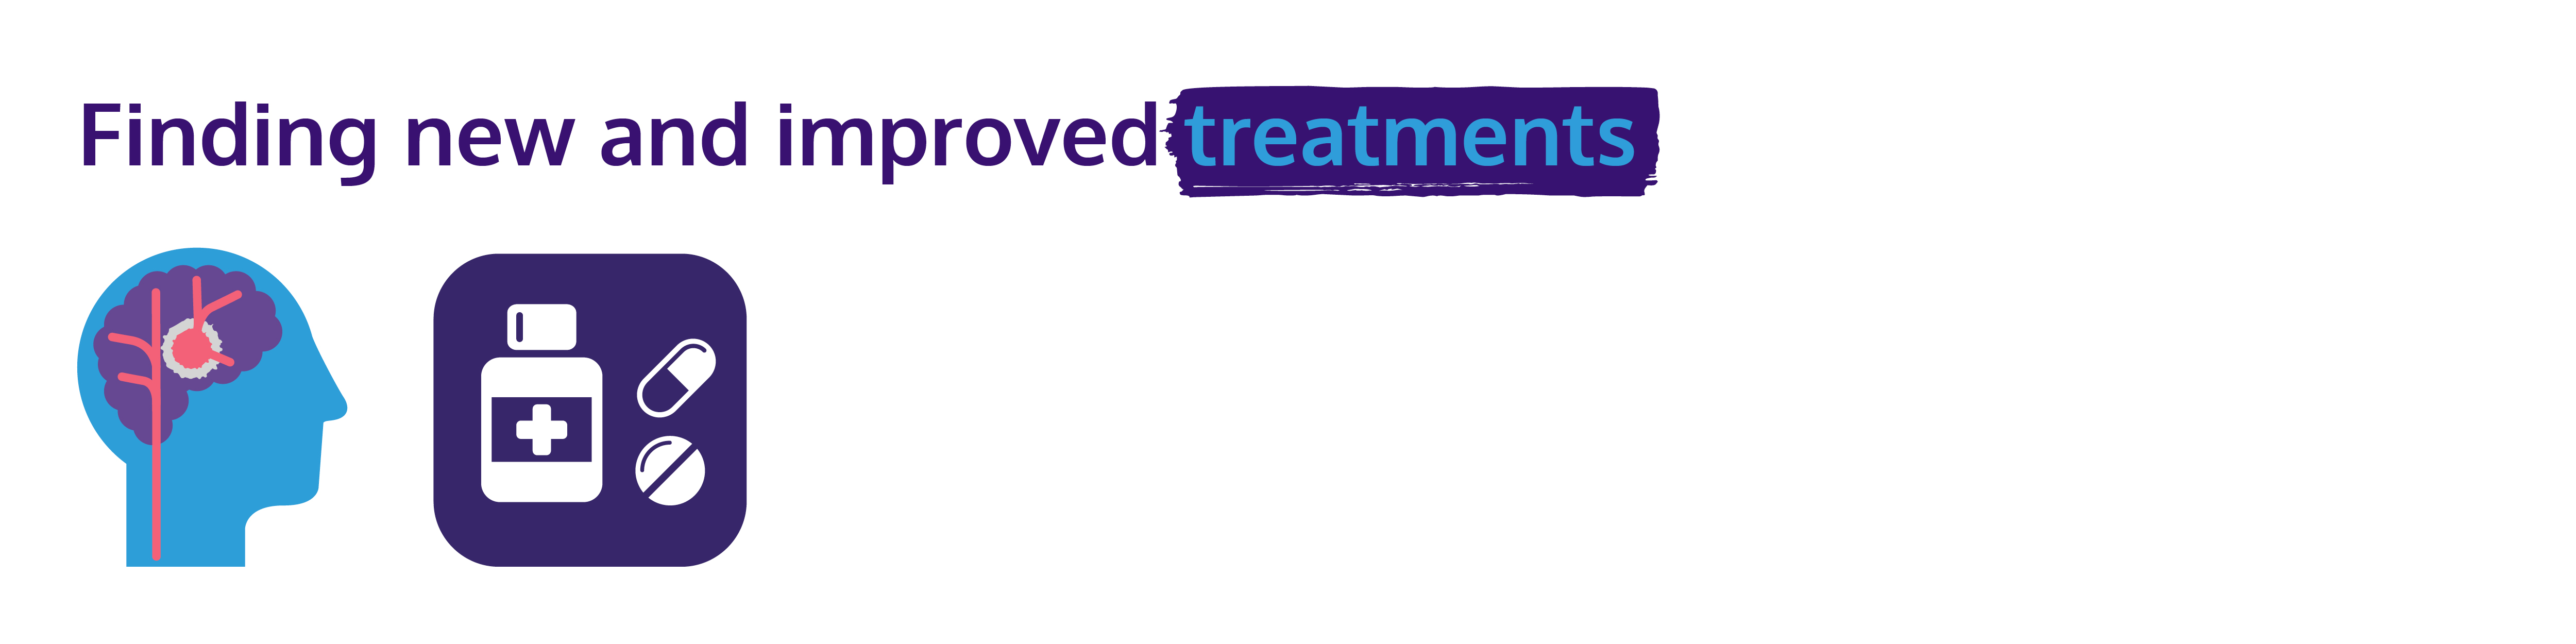 Finding new and improved treatments